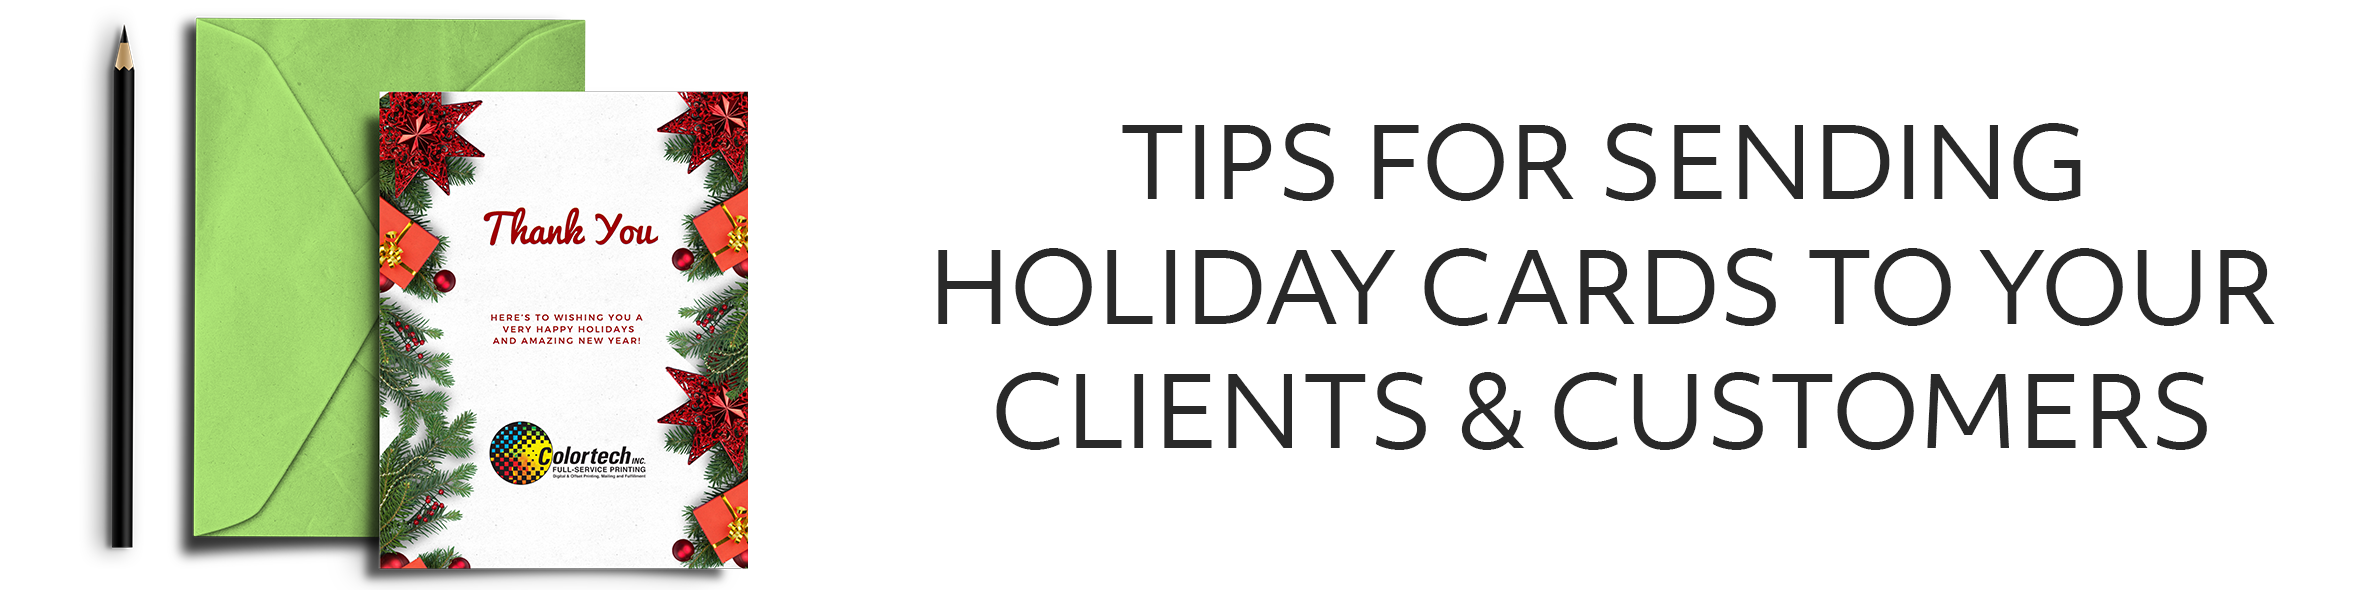 Tips for Sending Business Holiday Cards